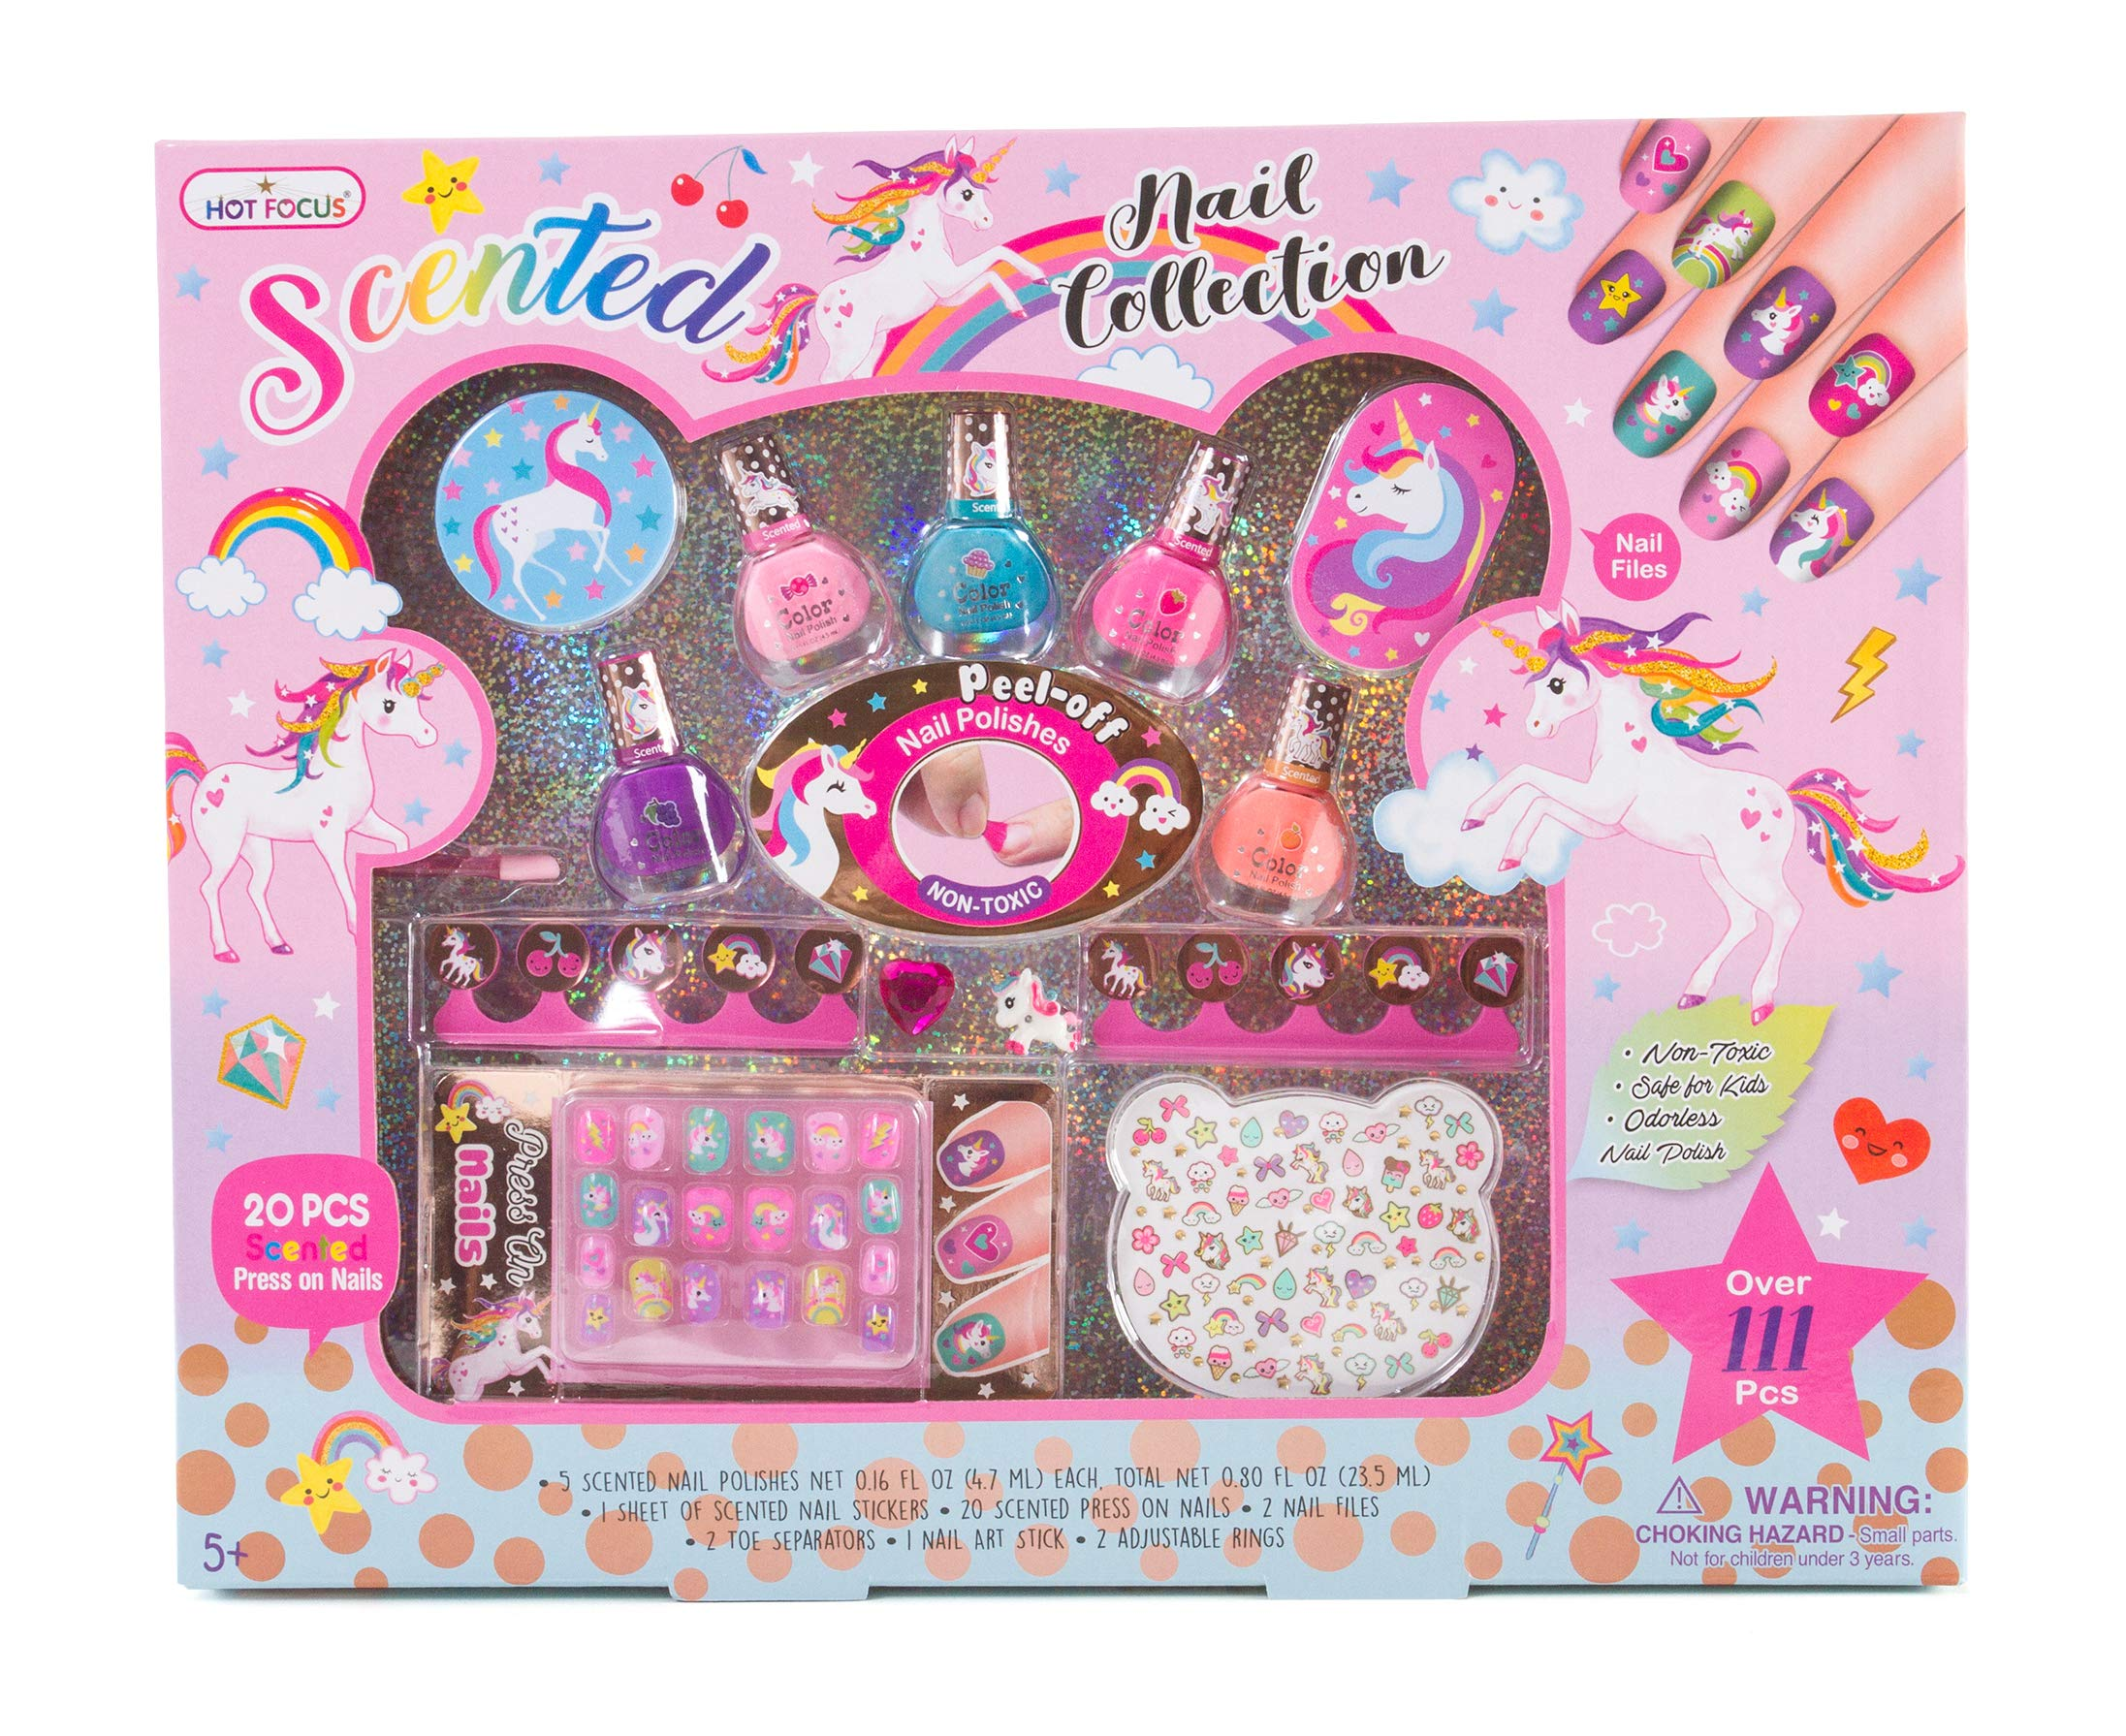 Hot Focus Unicorn Nail Art Gift Set – 112 Piece Scented Girls Nail Kit Includes Press On Nails, Nail Polishes, Toe Separators and More – Non-Toxic Water Based Peel Off Nail Polish 3